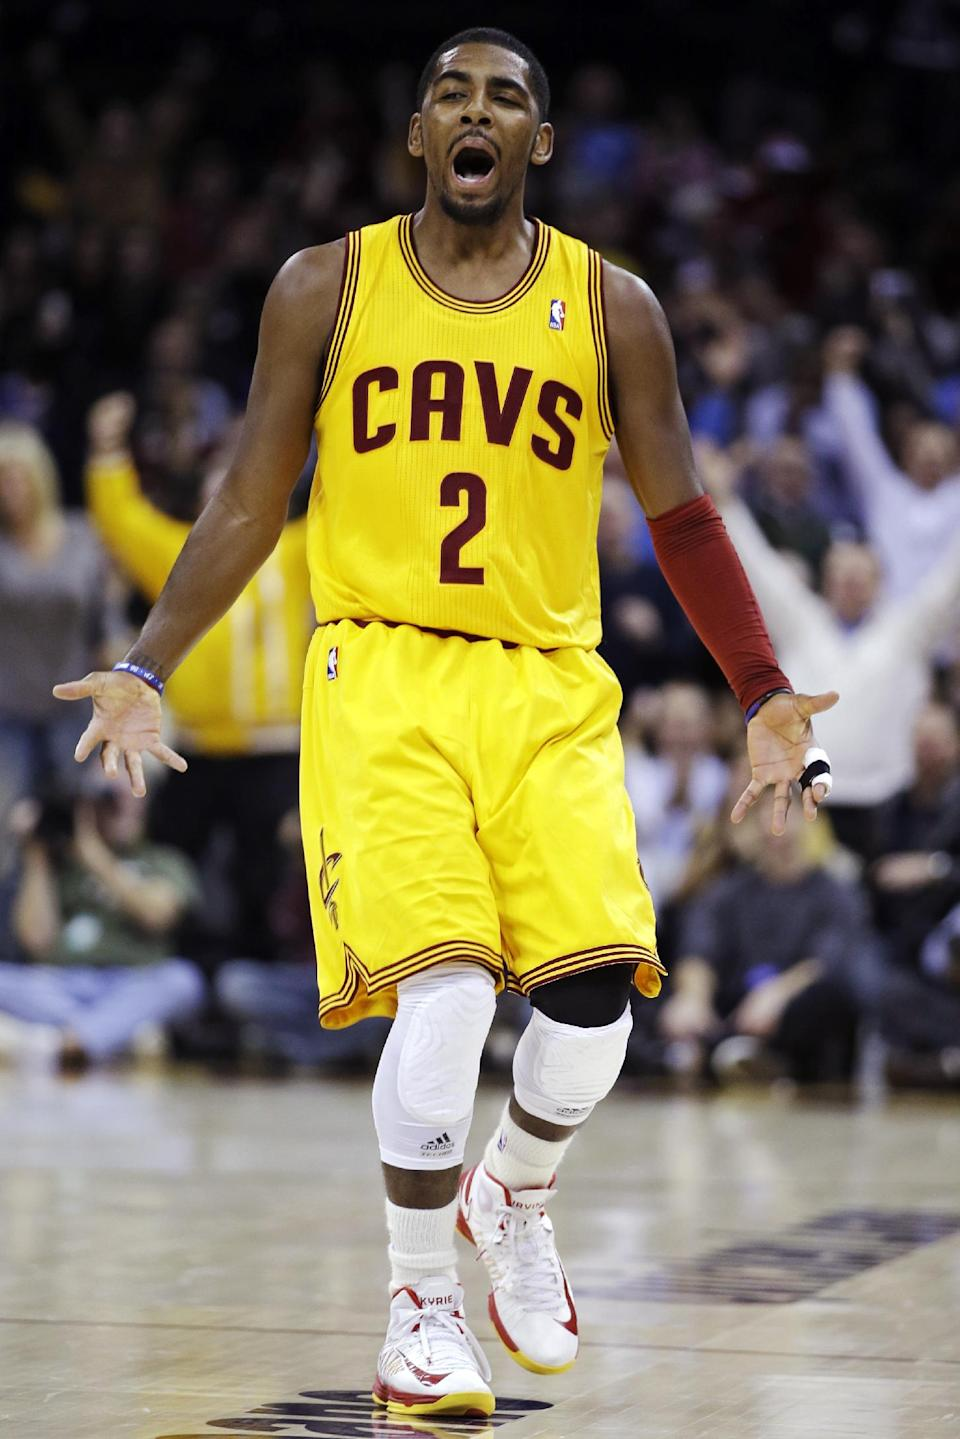 Cleveland Cavaliers' Kyrie Irving celebrates after making a 3-pointer against the Los Angeles Lakers in the second quarter of an NBA basketball game, Tuesday, Dec. 11, 2012, in Cleveland. (AP Photo/Mark Duncan)